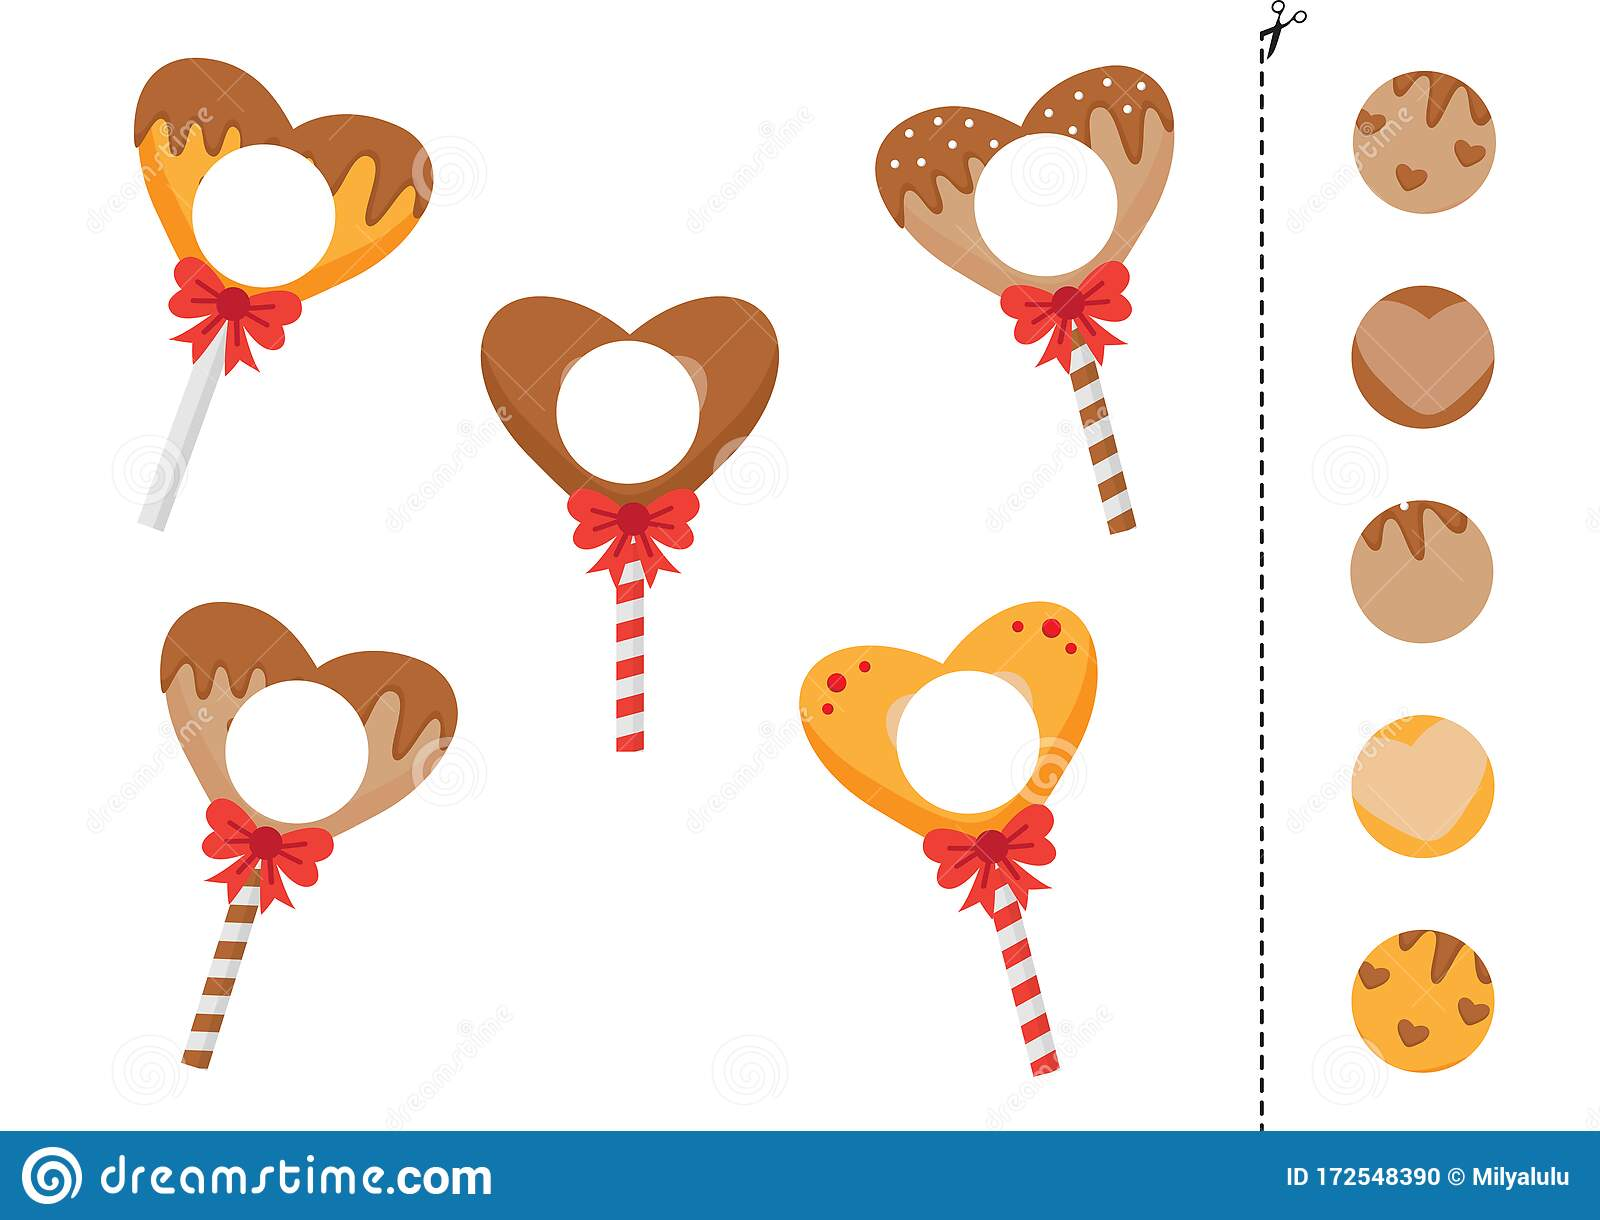 Matching Game Of Lollipops In Shape Of Heart Stock Vector